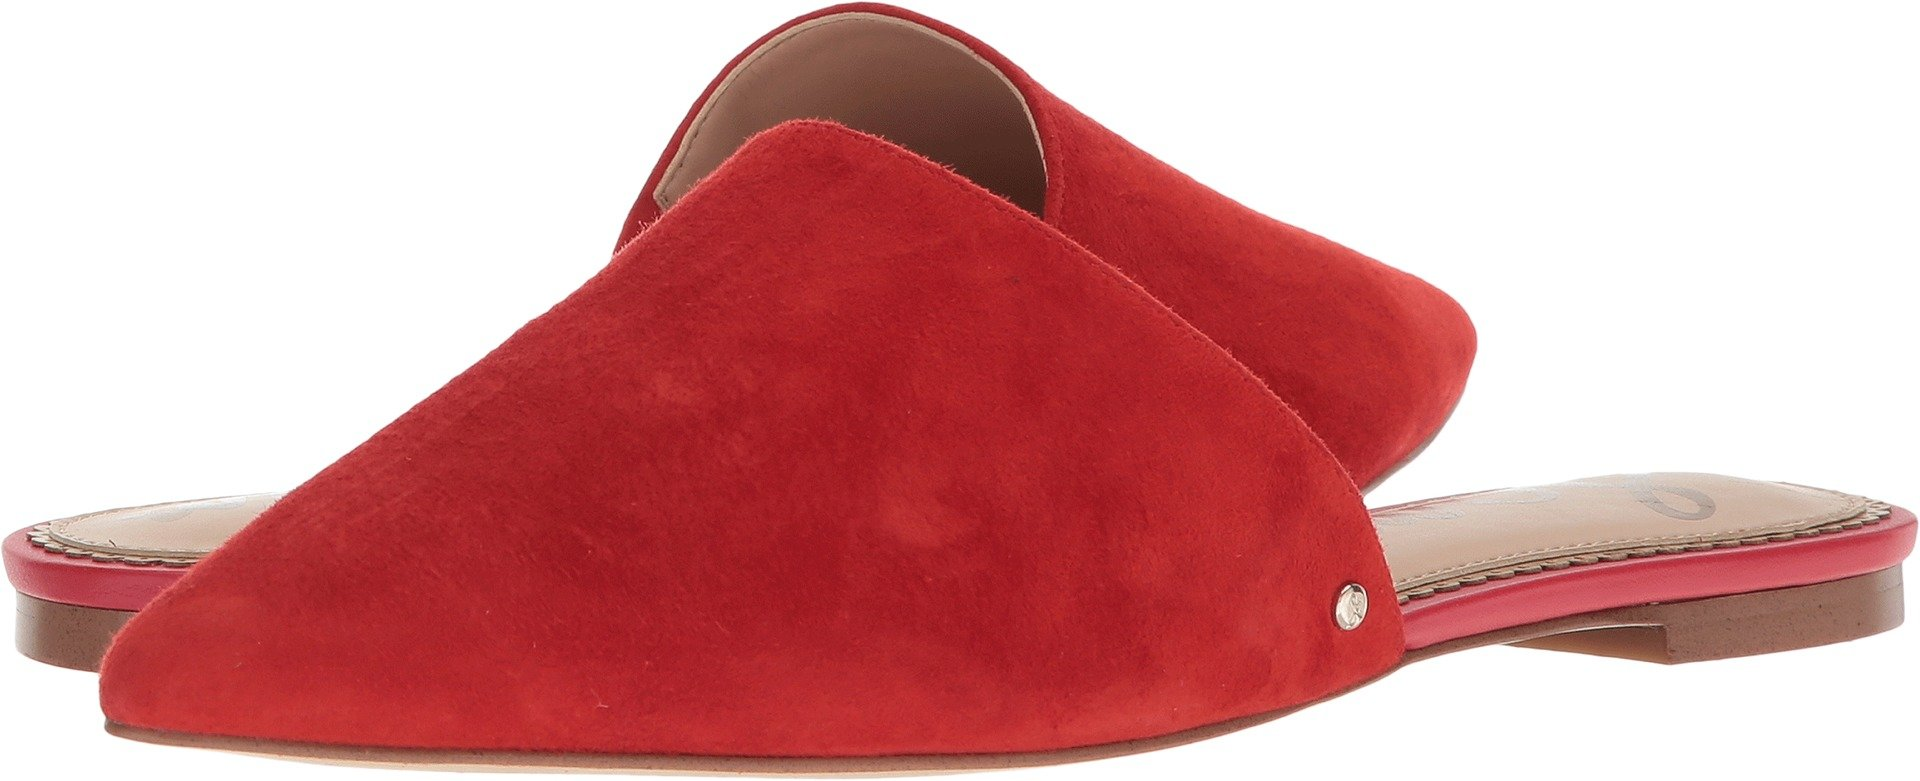 Sam Edelman Women's Rumi Candy Red Kid Suede Leather 11 M US